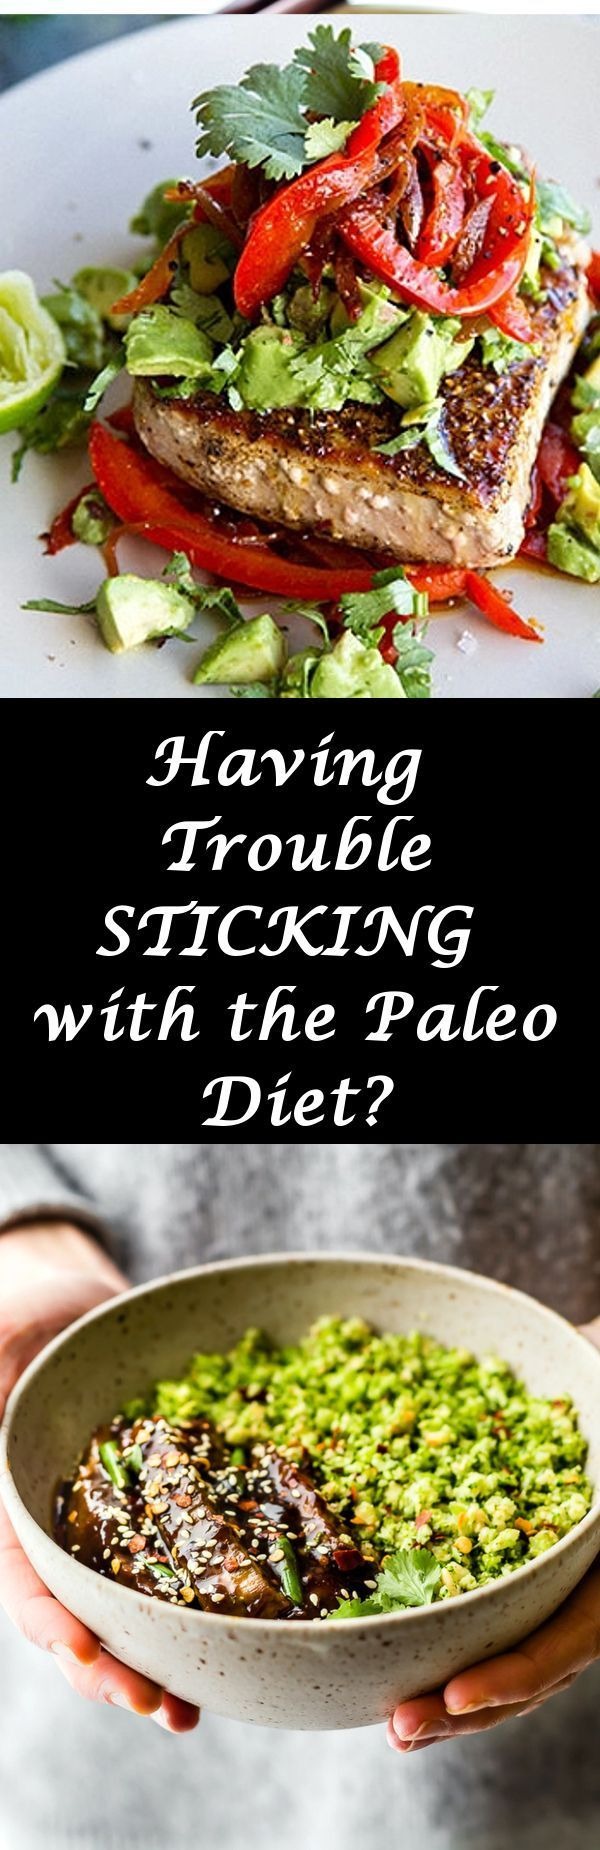 Having Trouble STICKING with the Paleo Diet